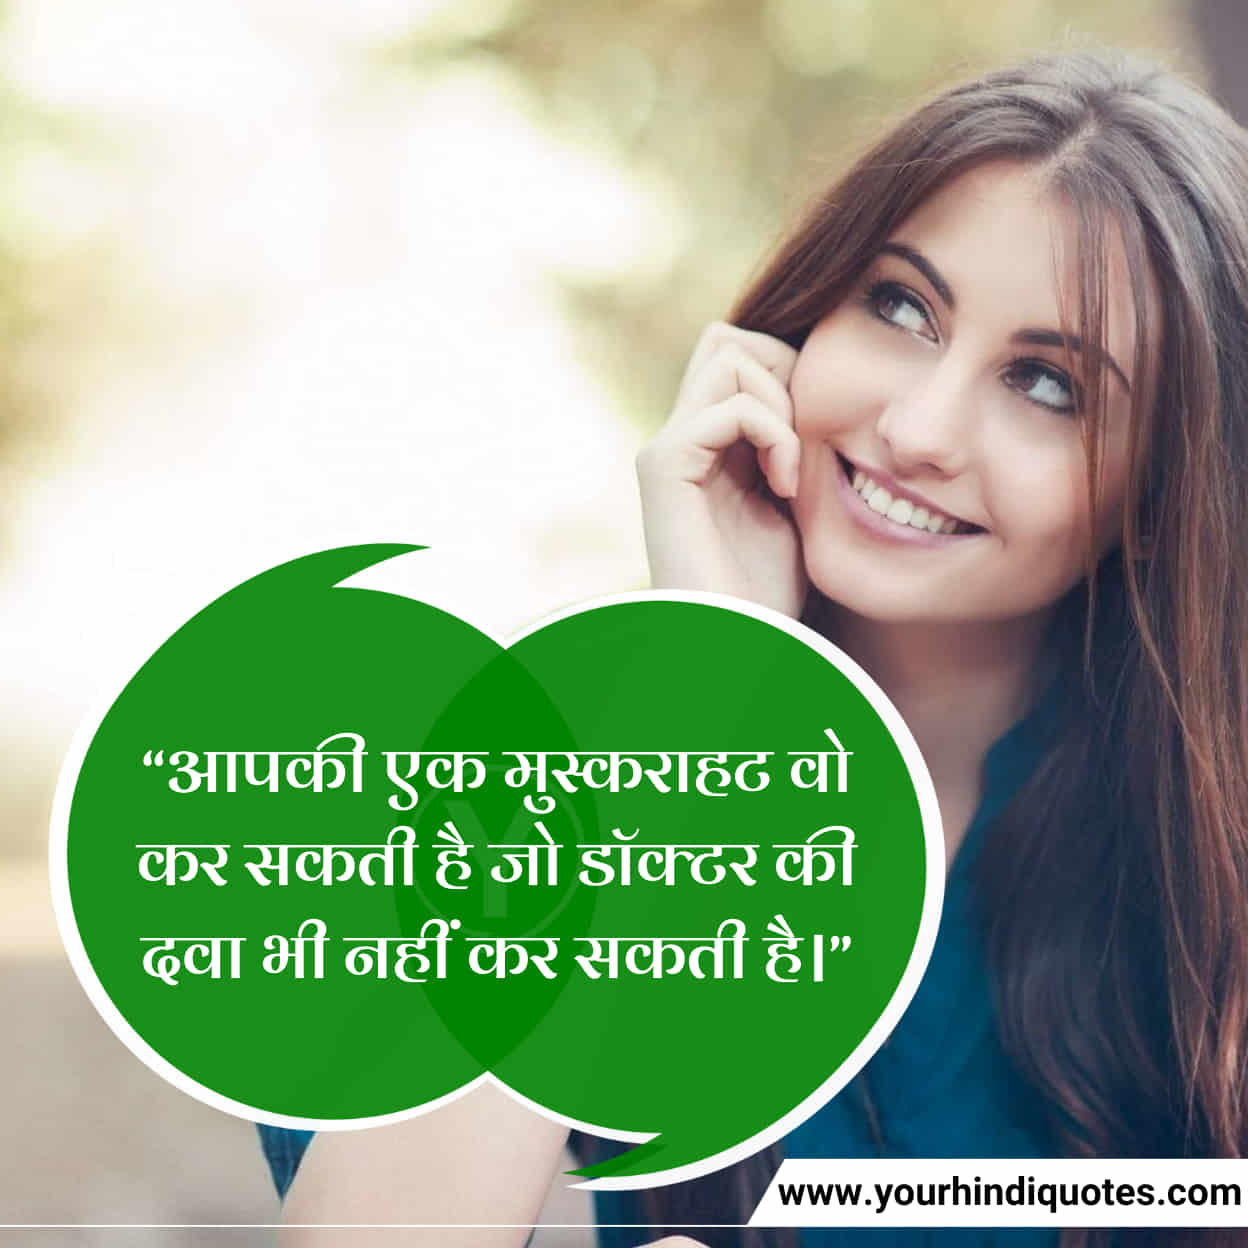 Best Khushi Smile Quotes